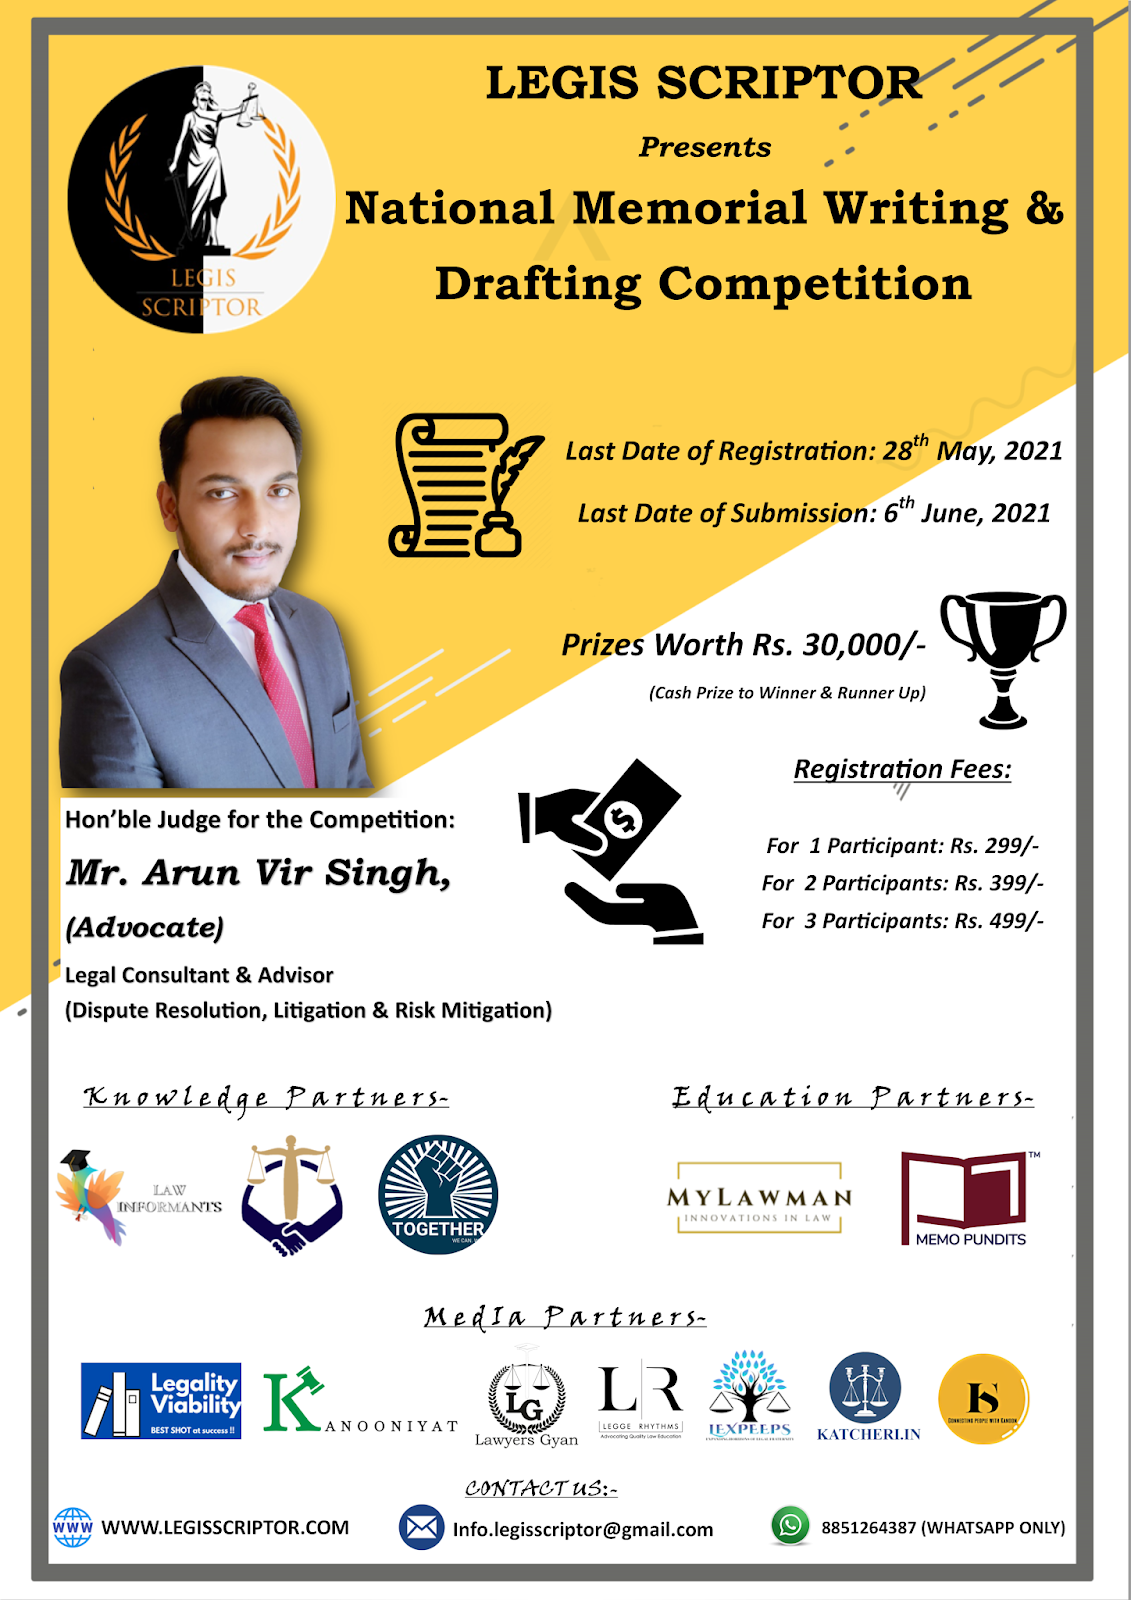 National Memorial Writing & Drafting Competition by Legis Scriptor [Register by 28 May 2021]